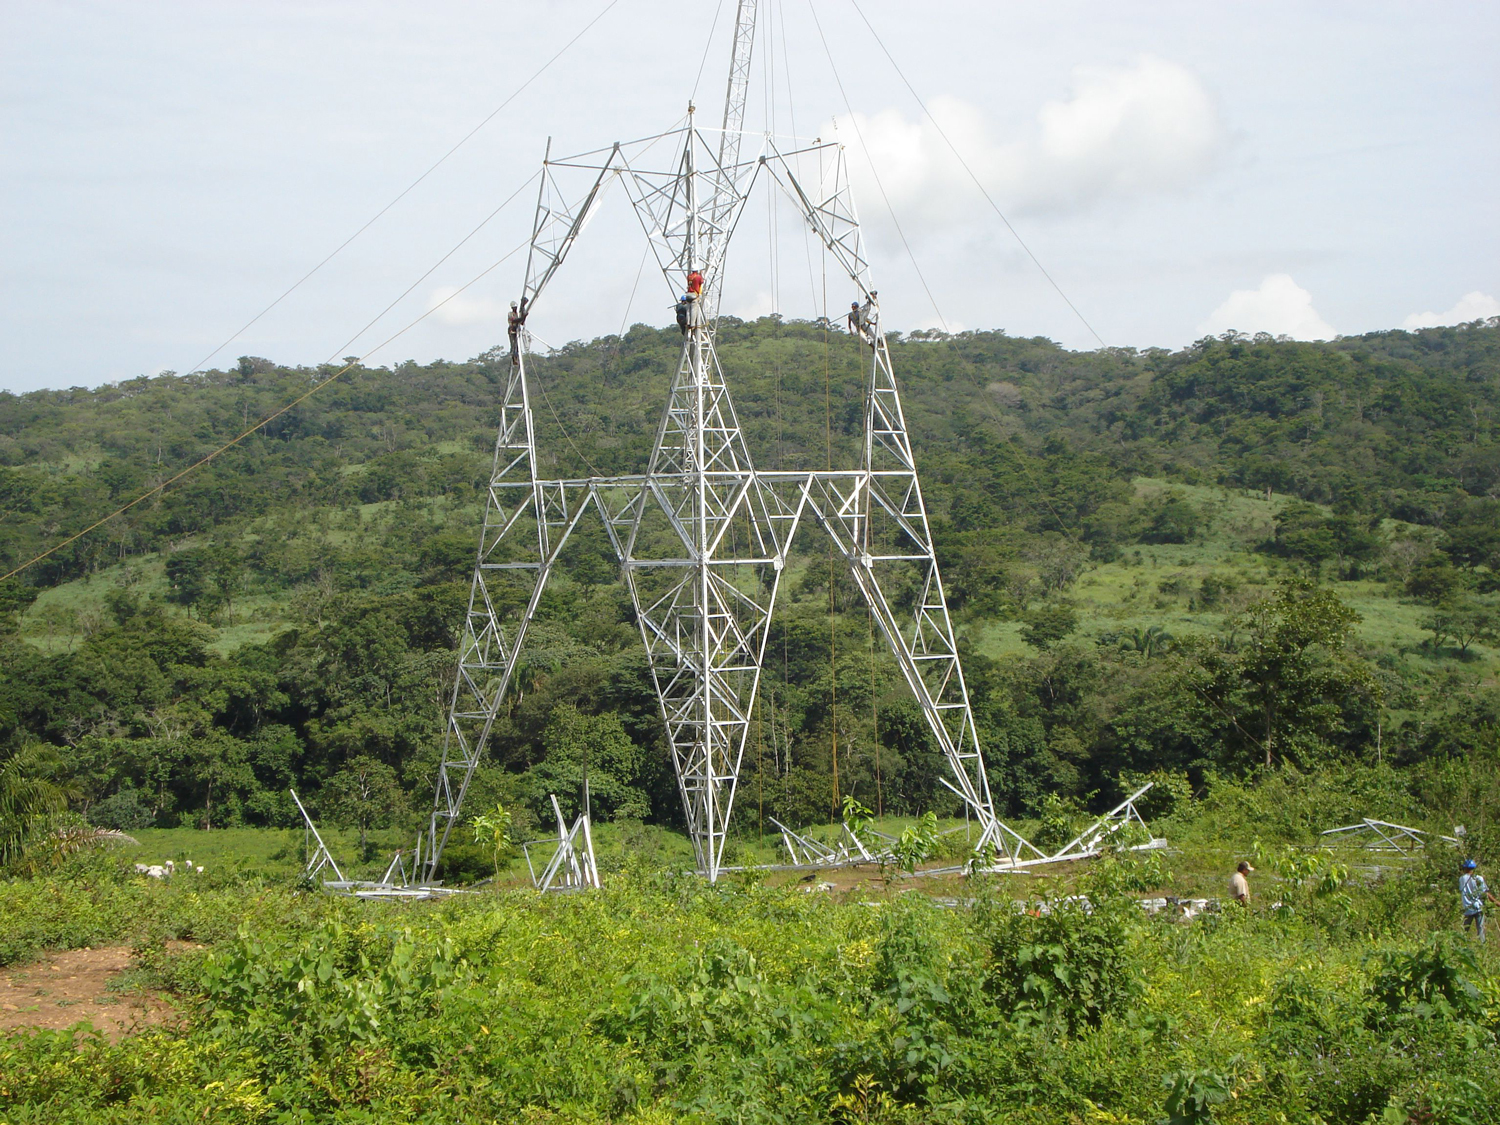 Construction of new powerline towers with Tesmec Stringing